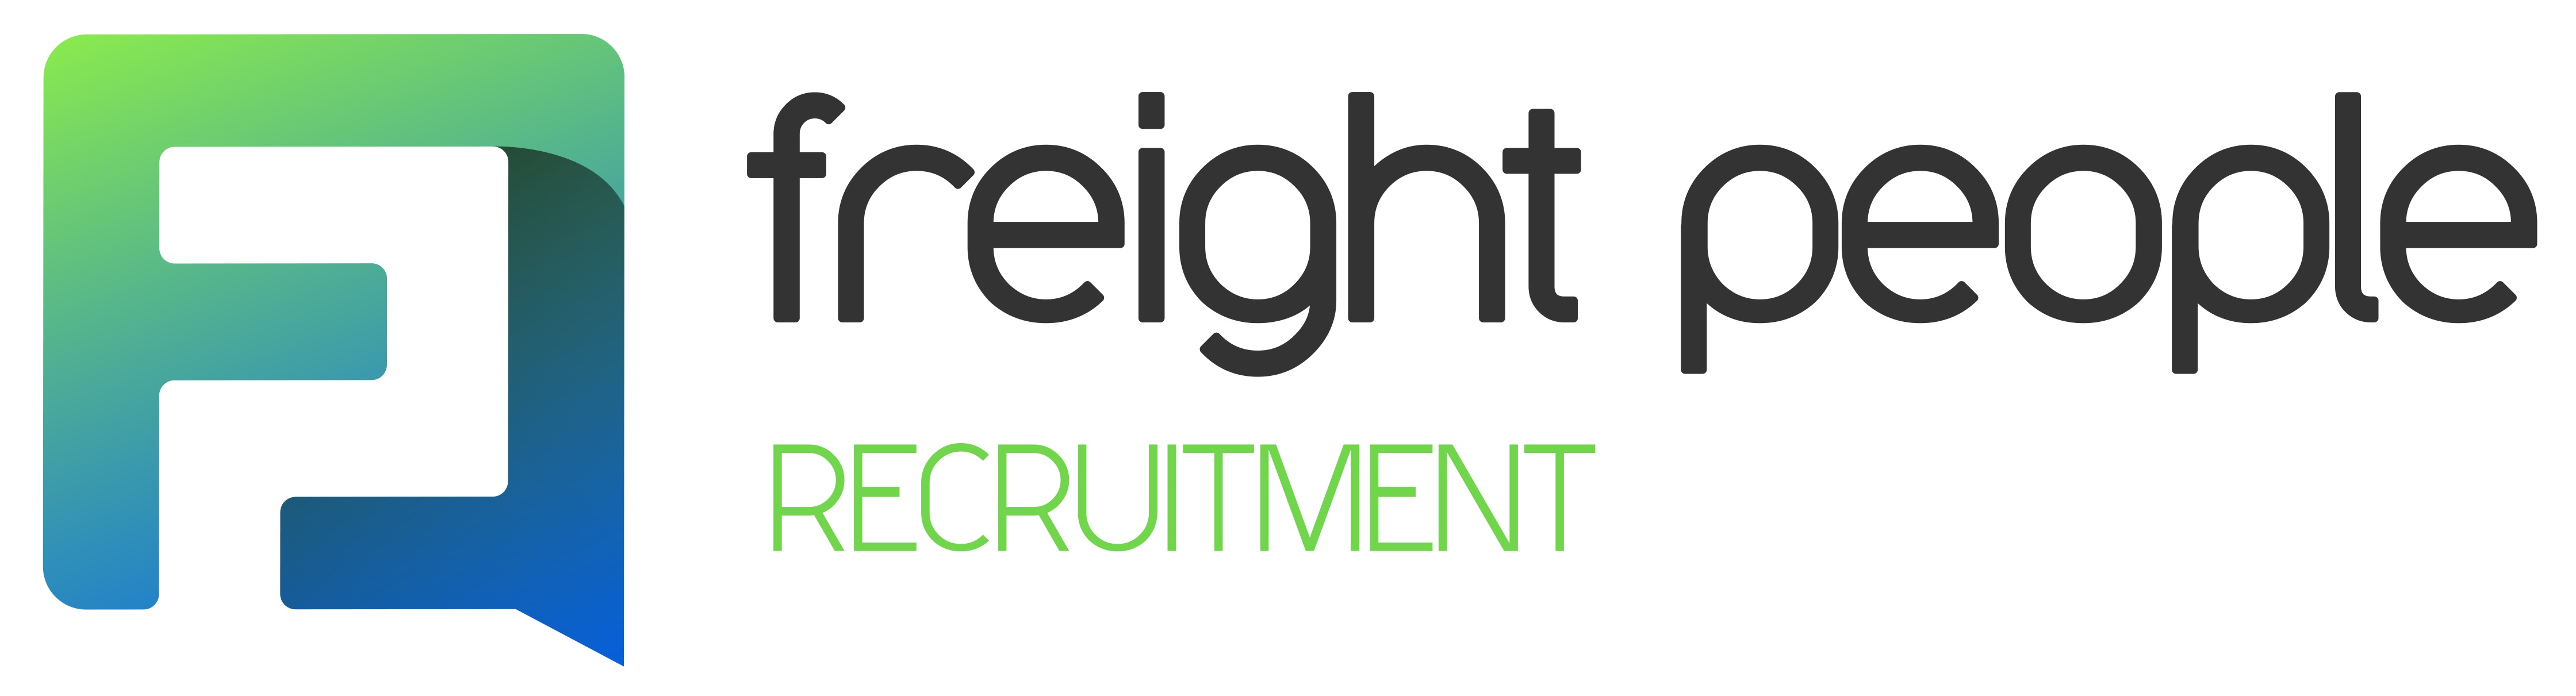 Freight People, s.r.o.